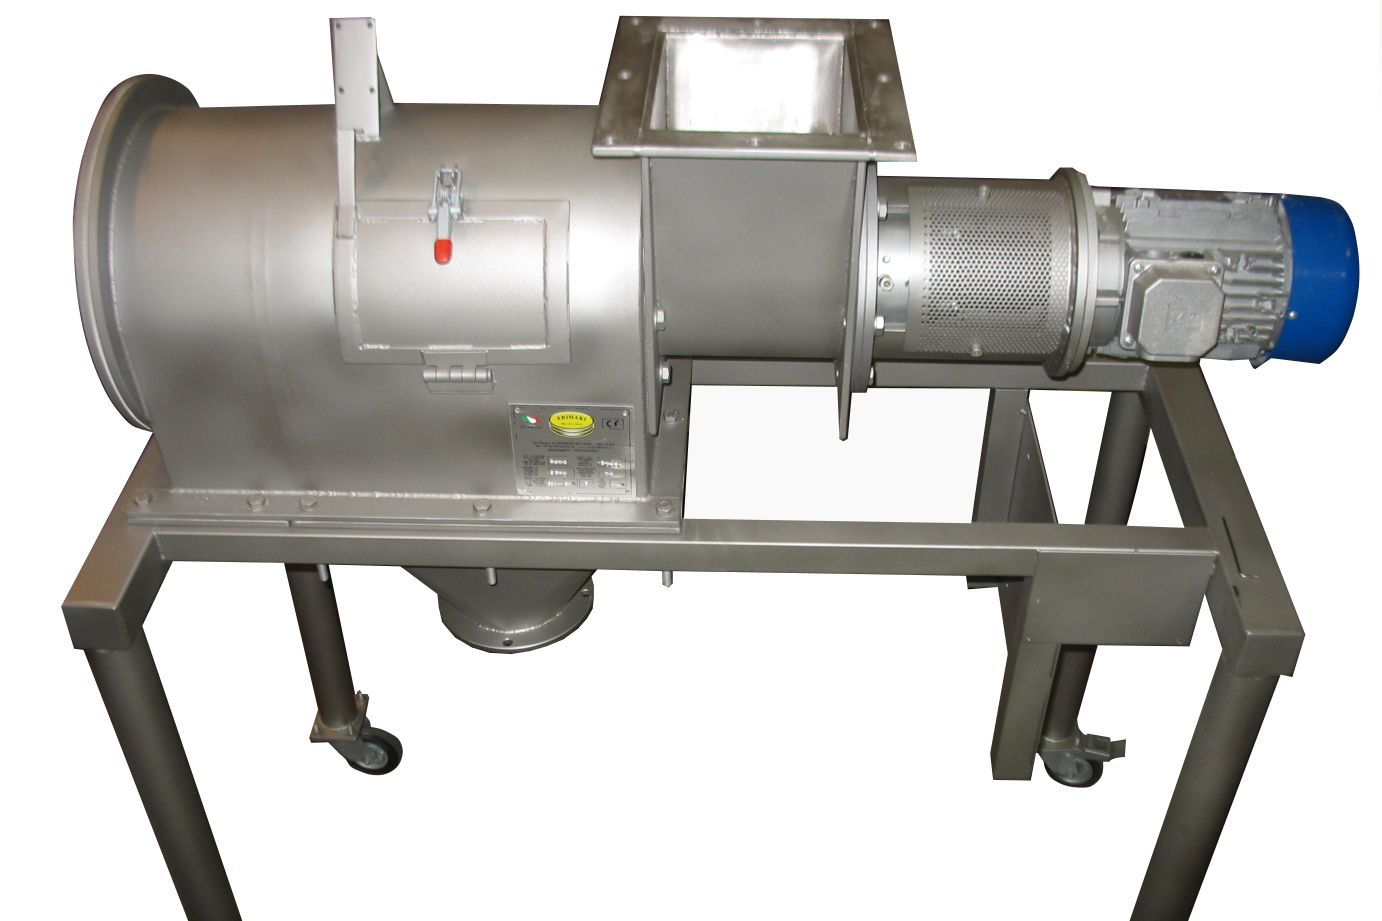 Rotary Separator example mirror polish